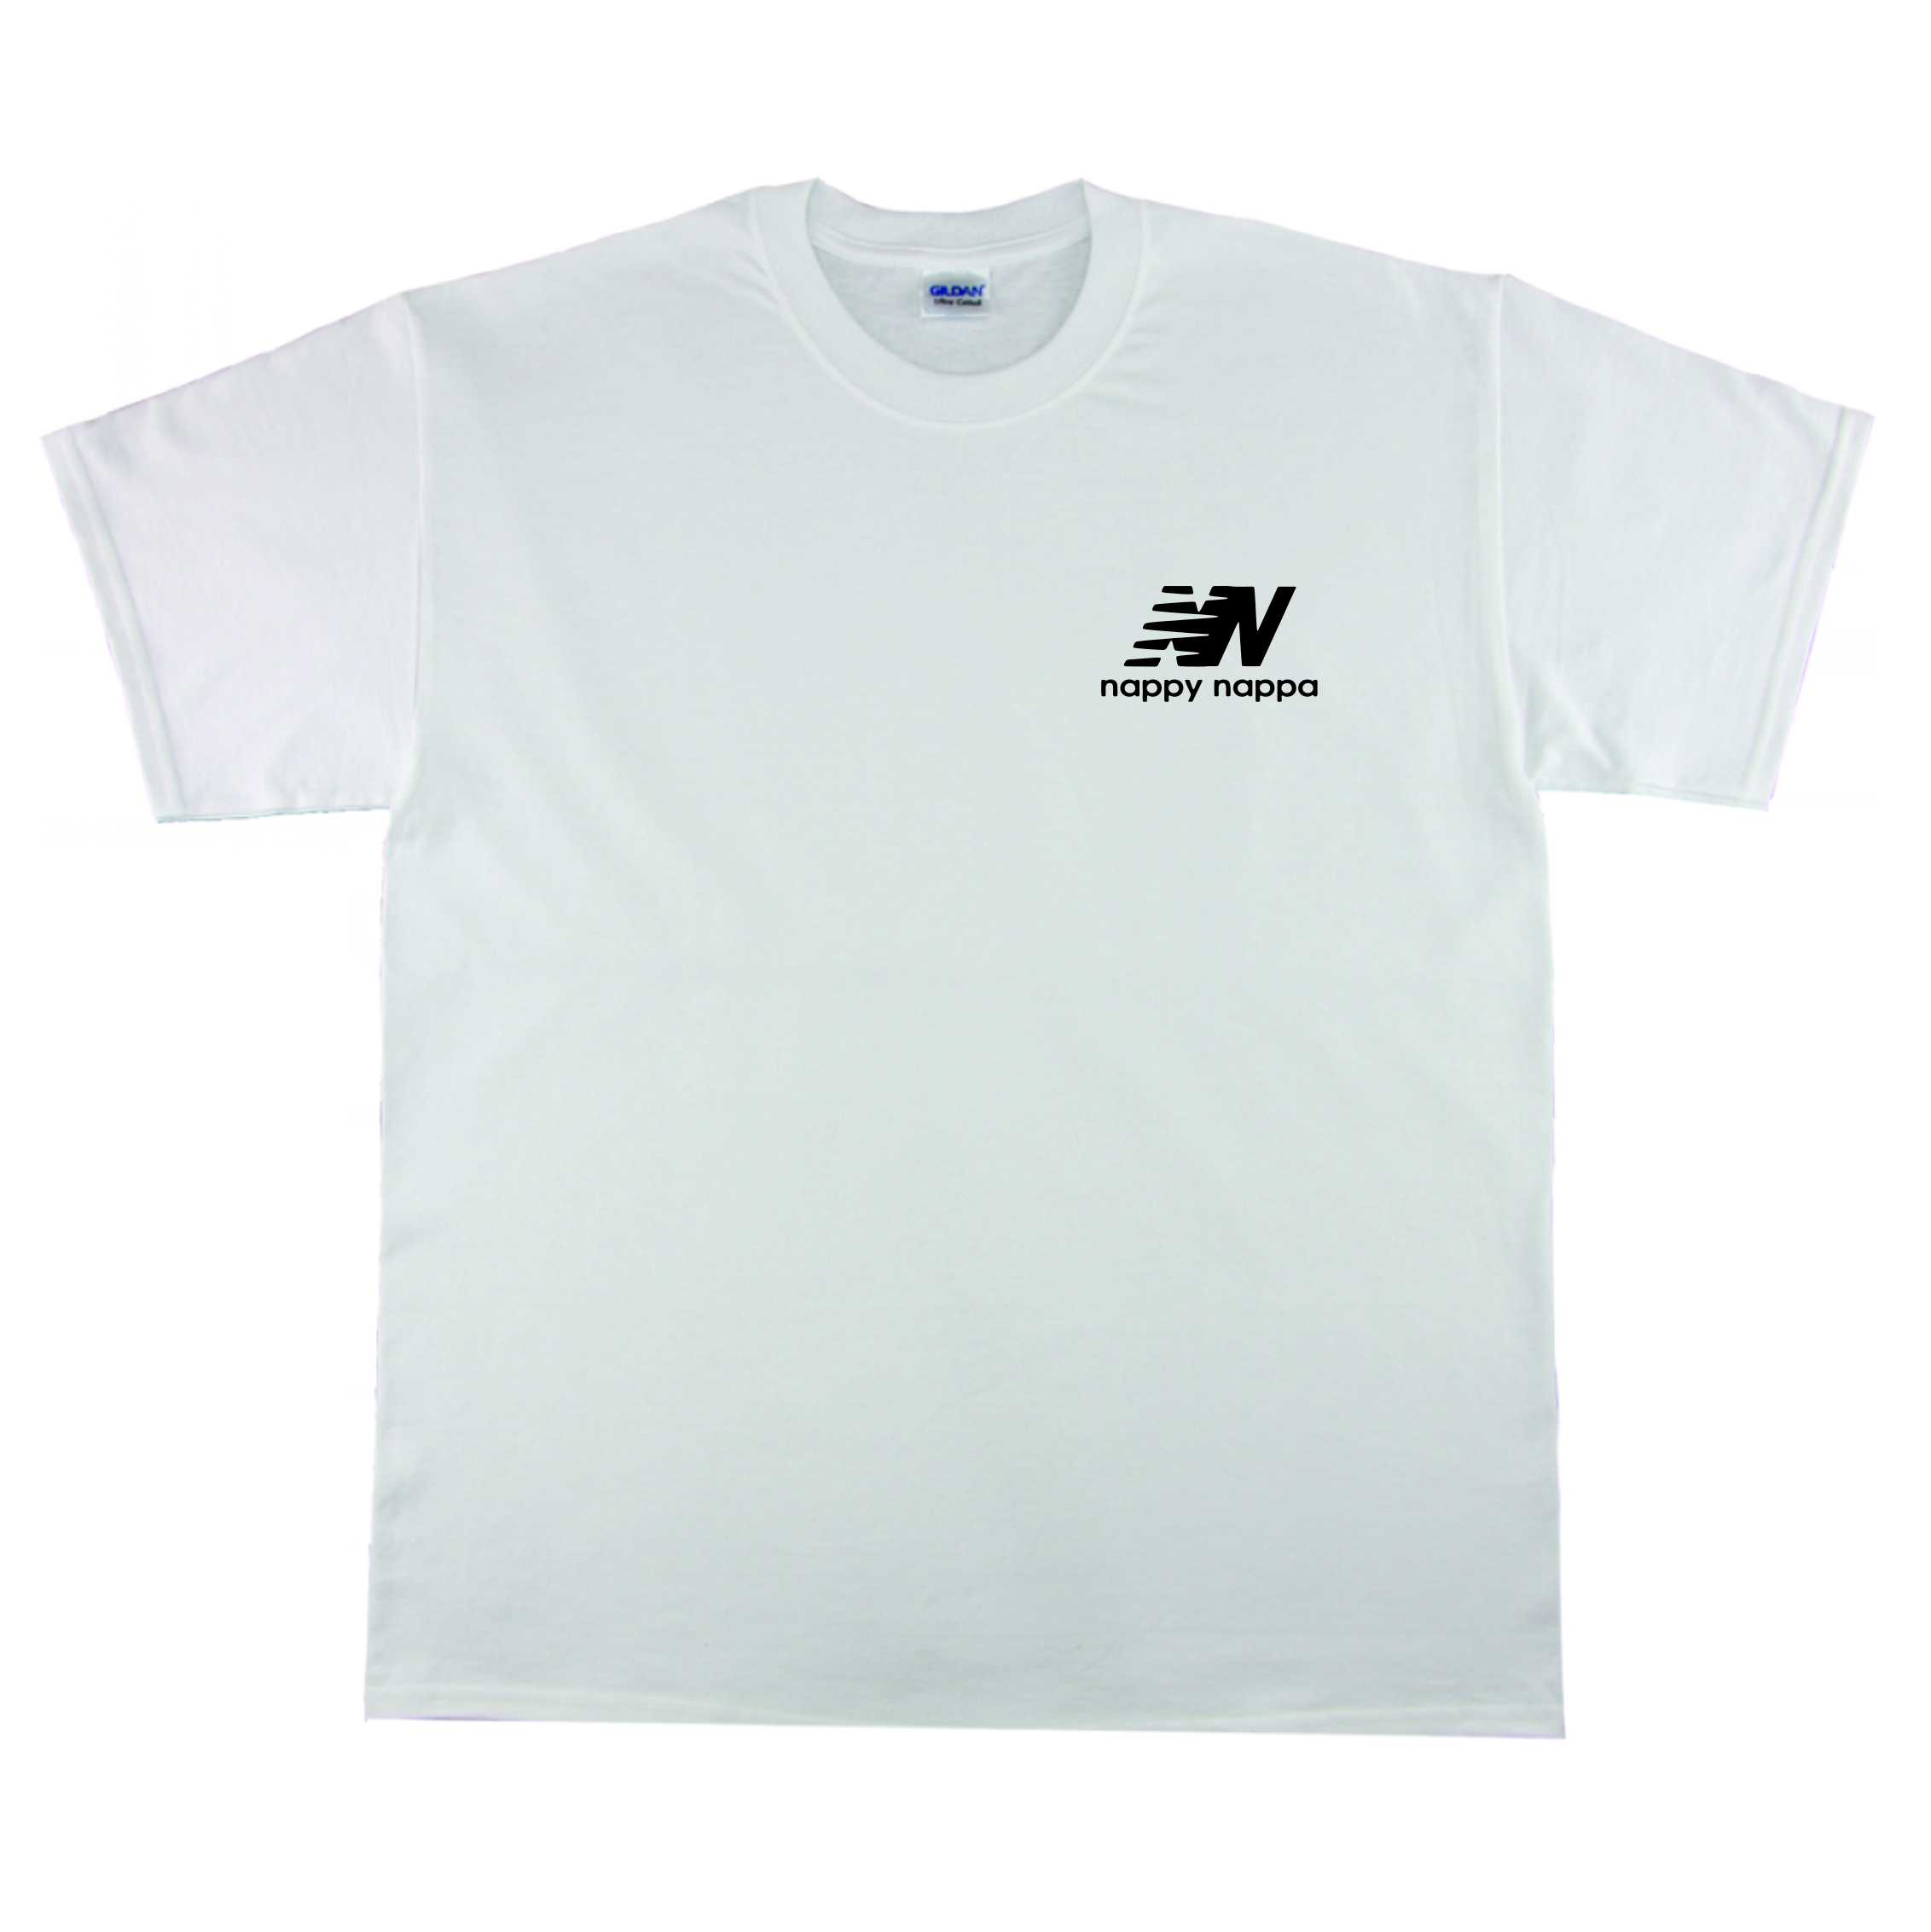 NAPPYNAPPA - NEW BALANCE T-SHIRT *SOLD OUT*